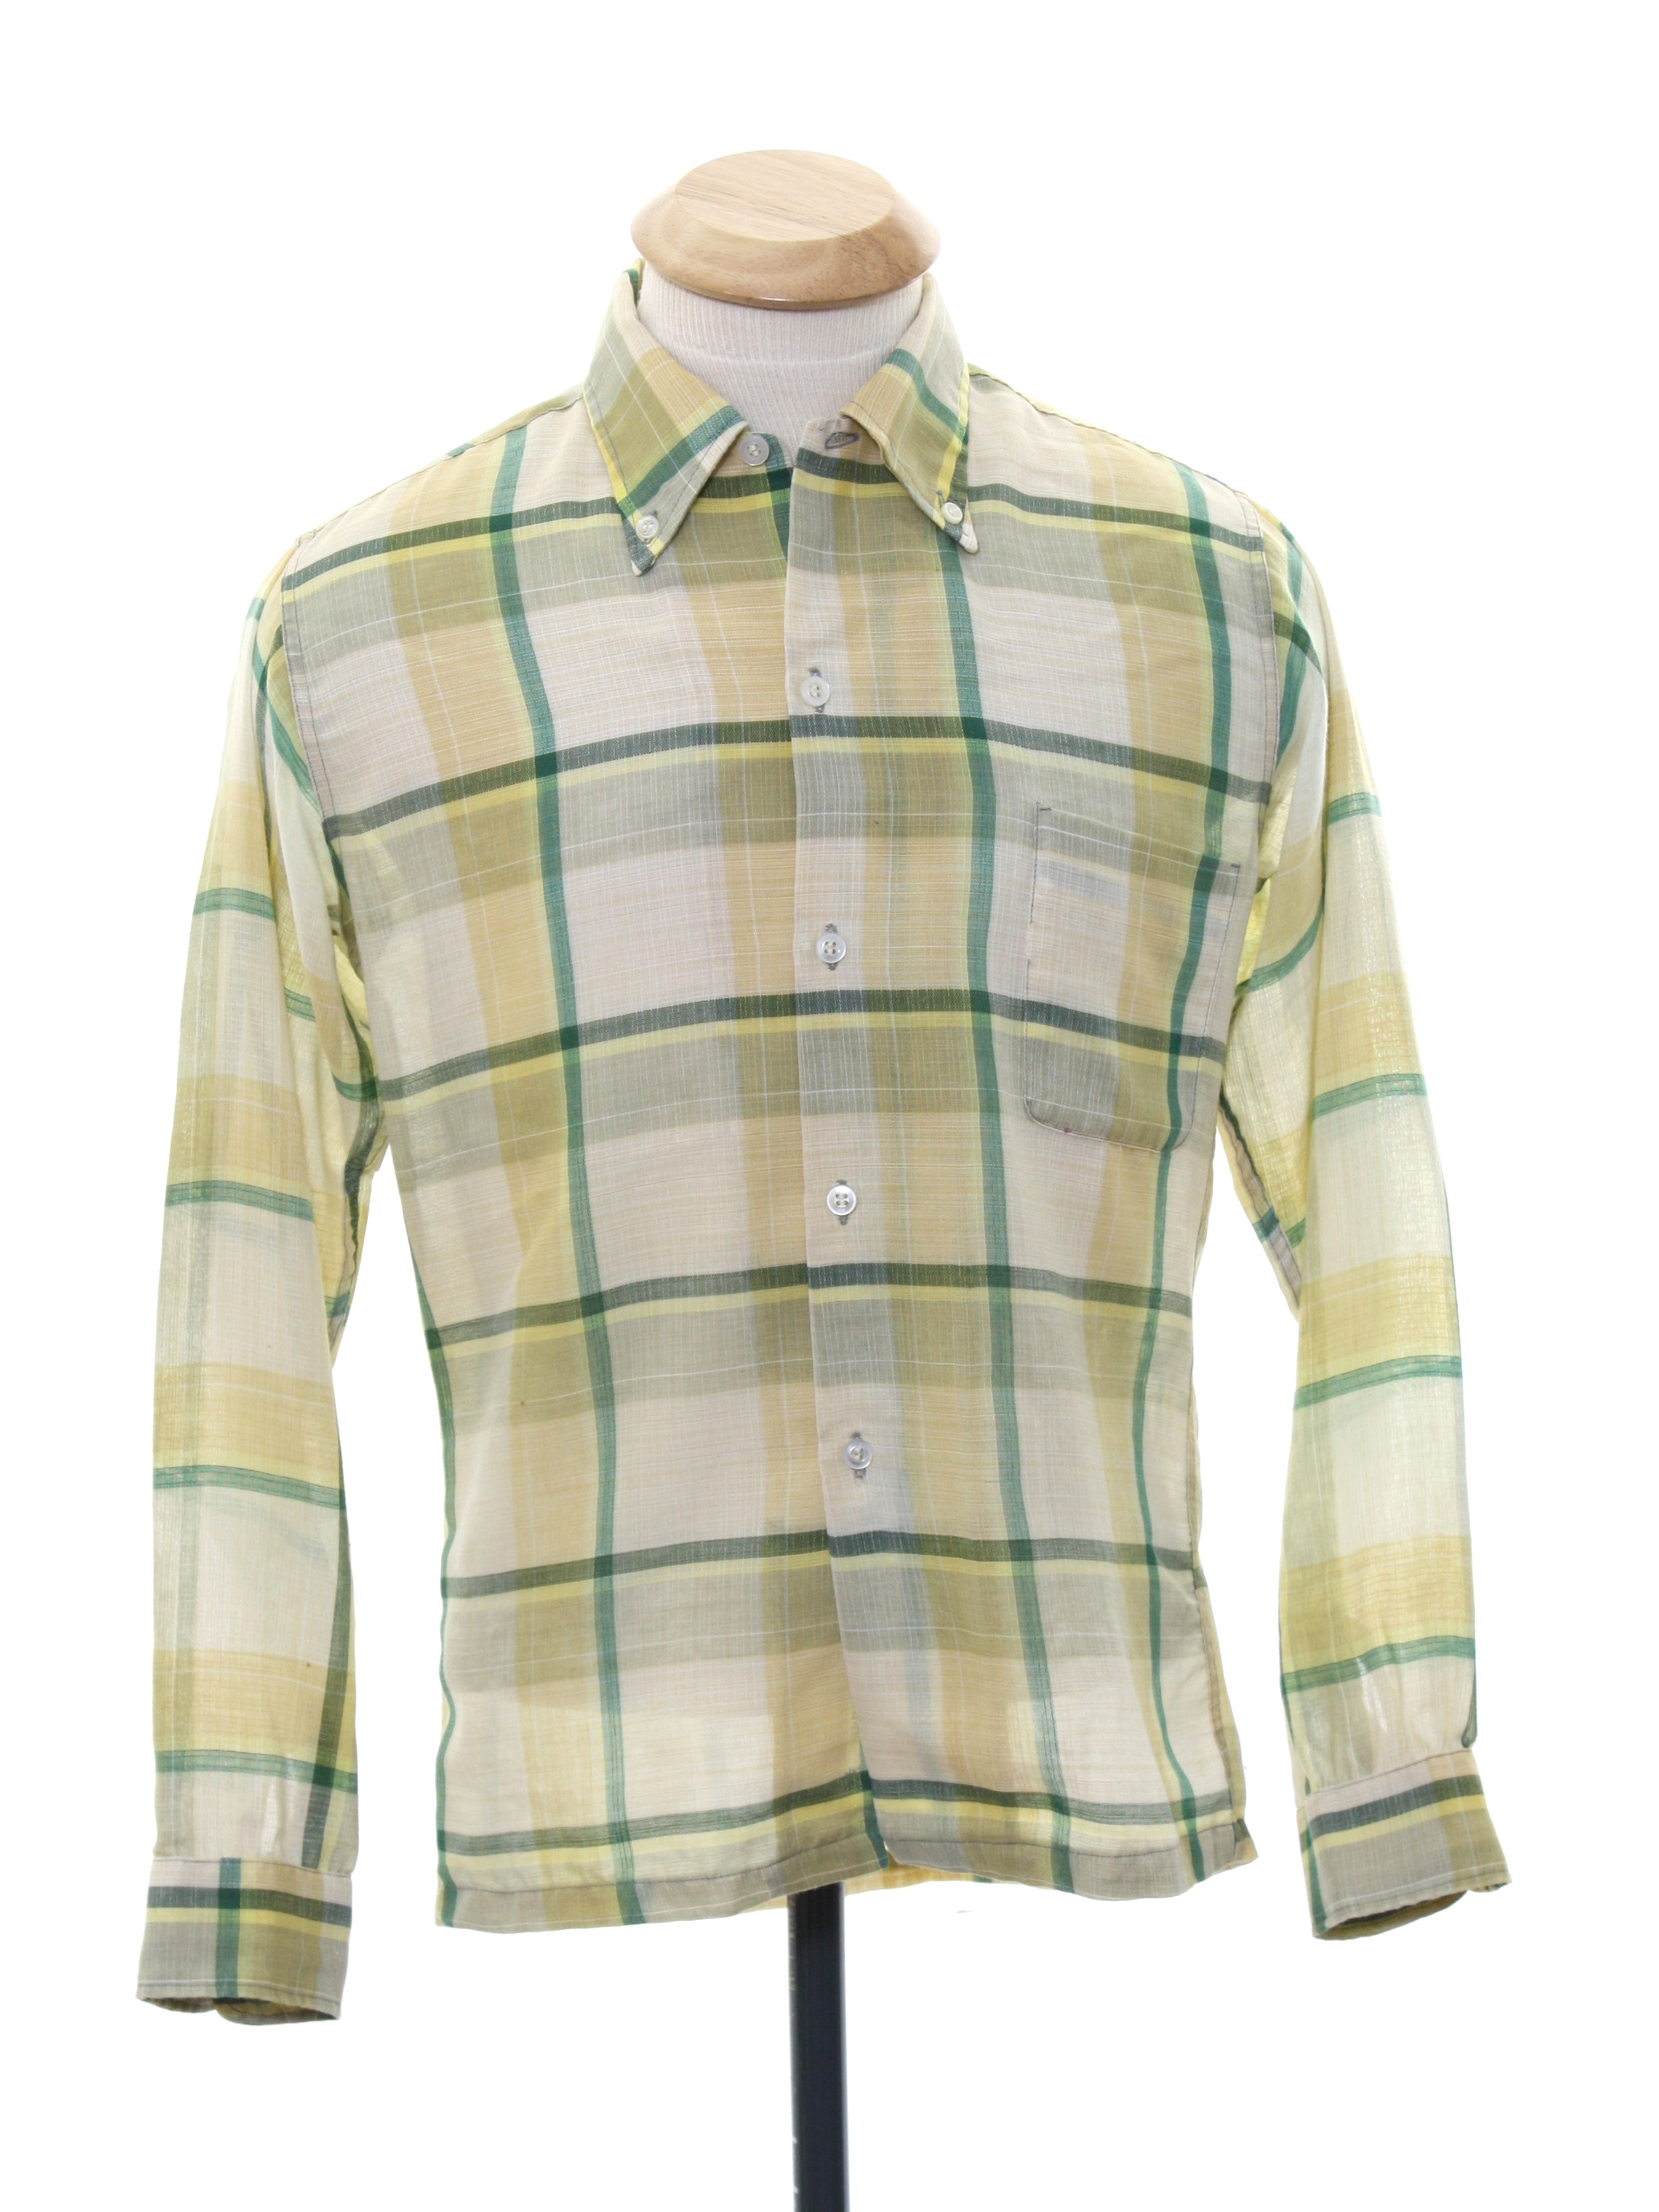 f54c631a1 Sixties Vintage Shirt: 60s -Towncraft- Boys off white background ...